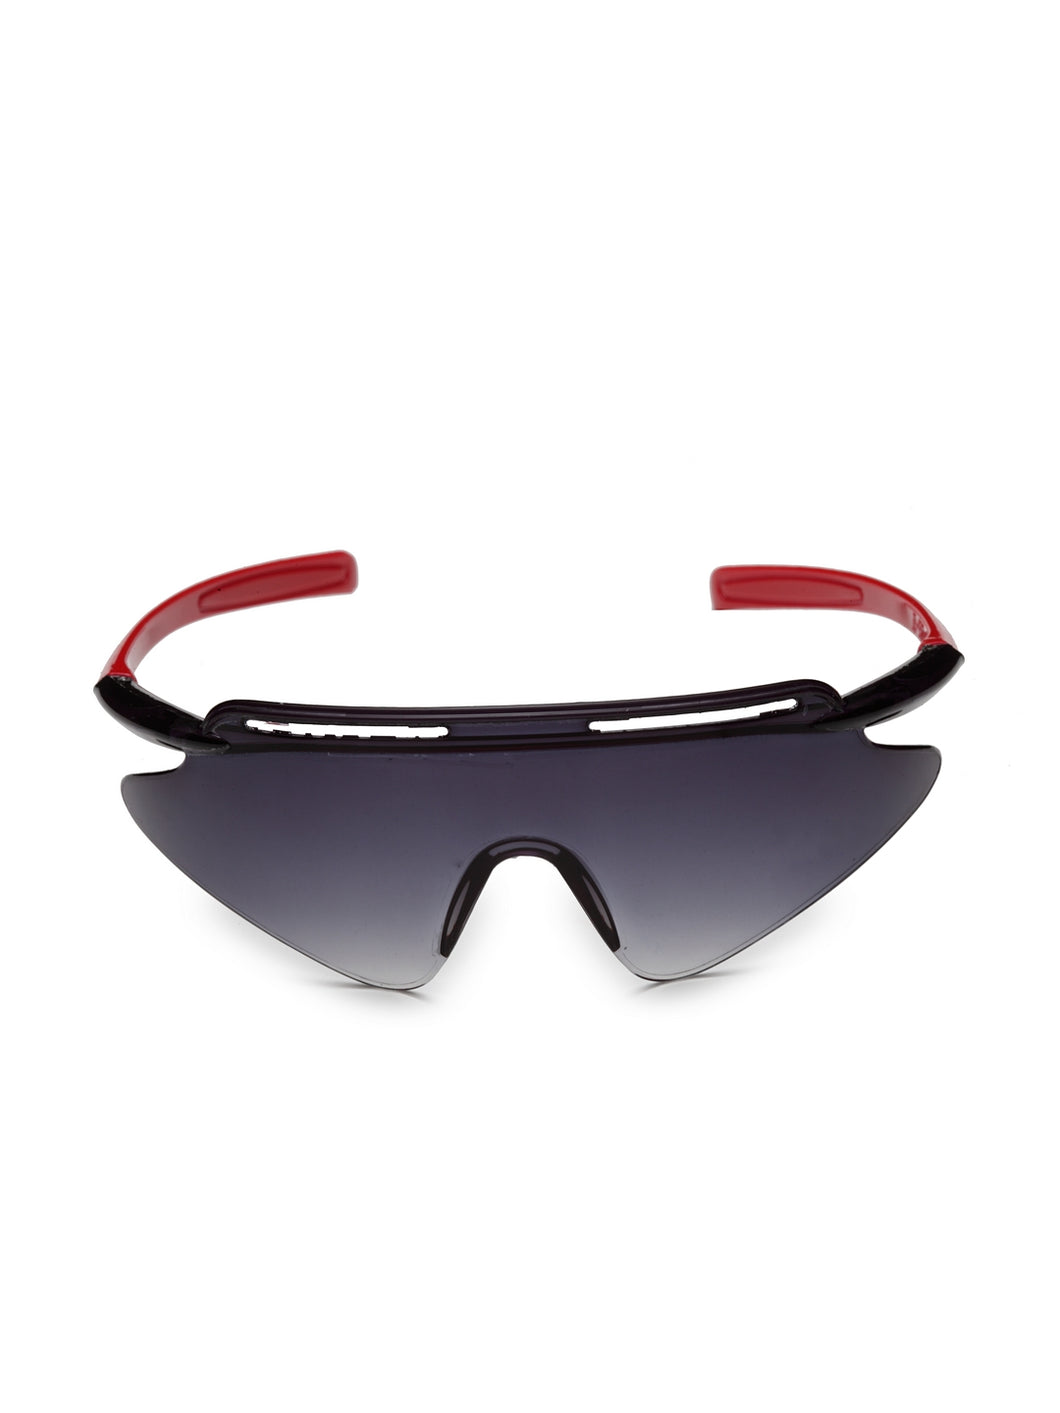 Stol'n Premium Attractive Fashionable UV-Protected Sports Shape Sunglasses - Black